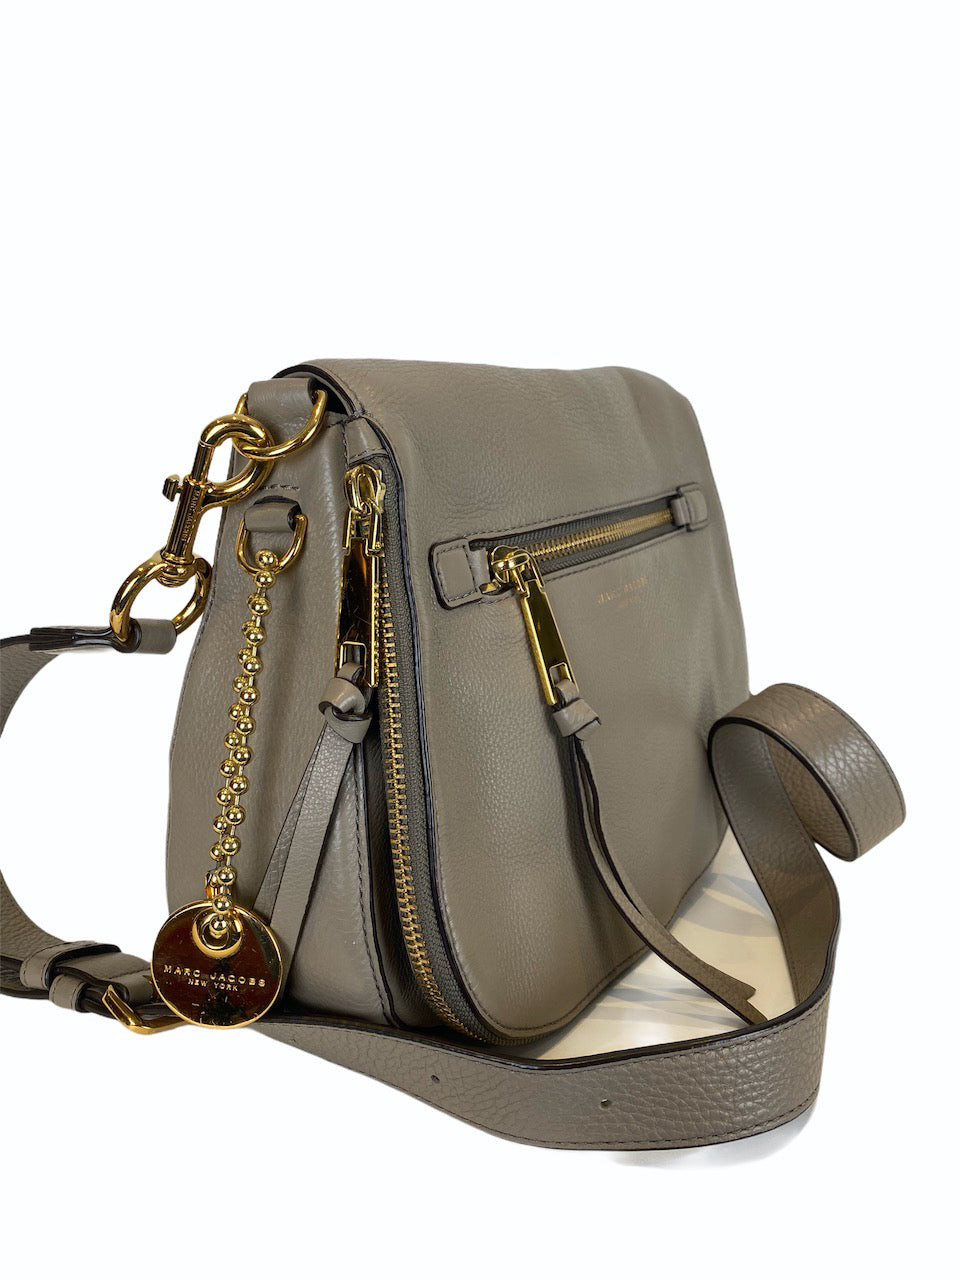 Marc Jacobs Large Grey 'Recruit' Crossbody Bag - As Seen on Instagram 13/09/2020